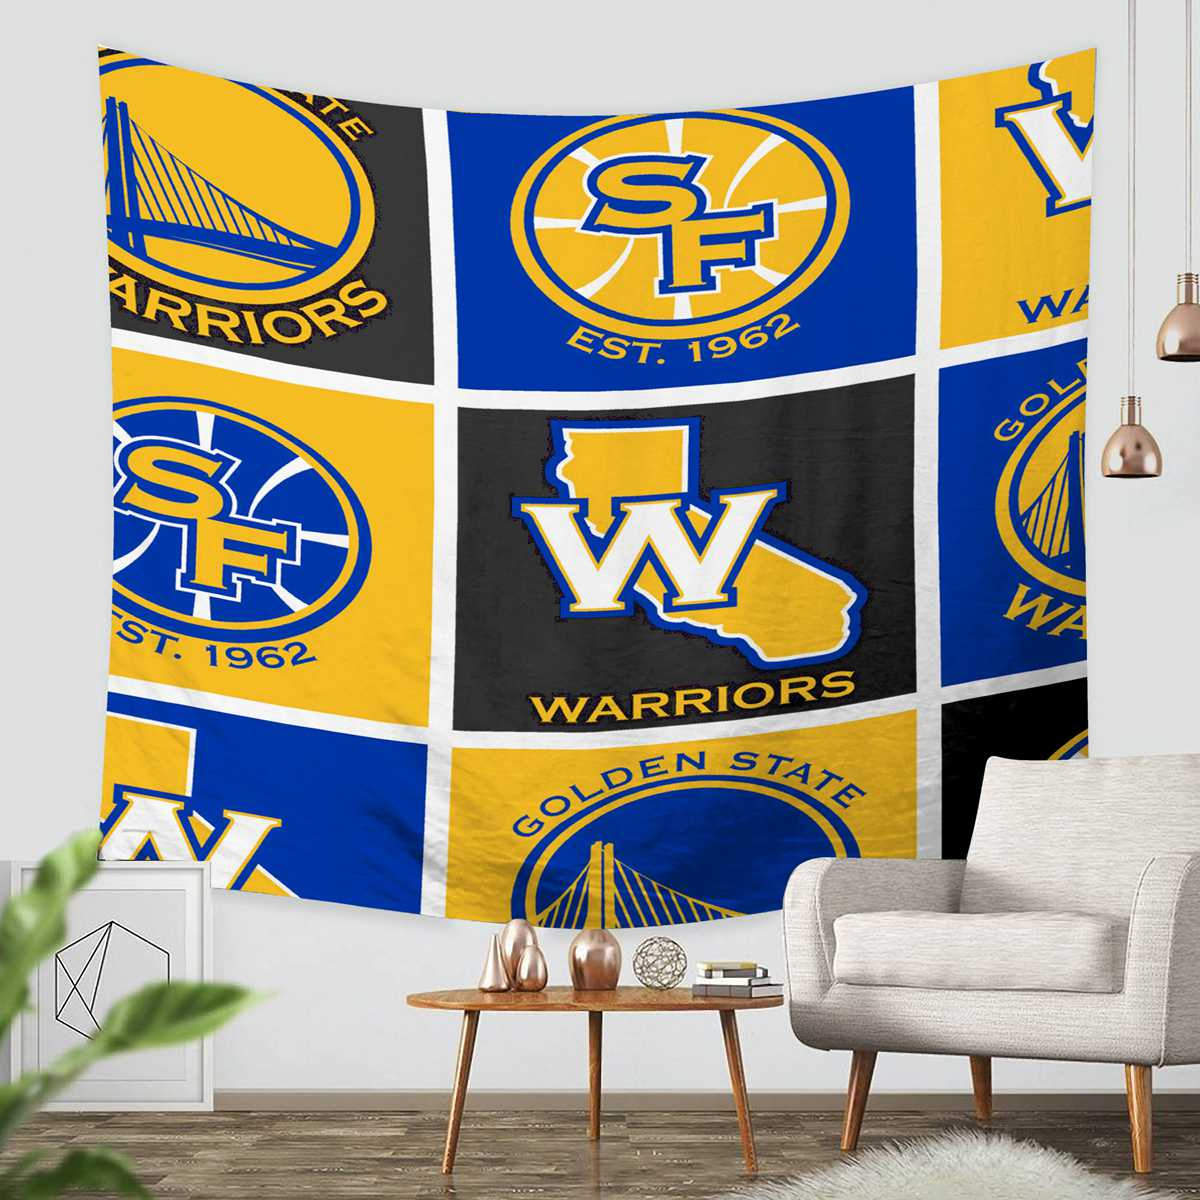 Funky Golden State Warriors Wall Decor Motif - Wall Painting Ideas ...